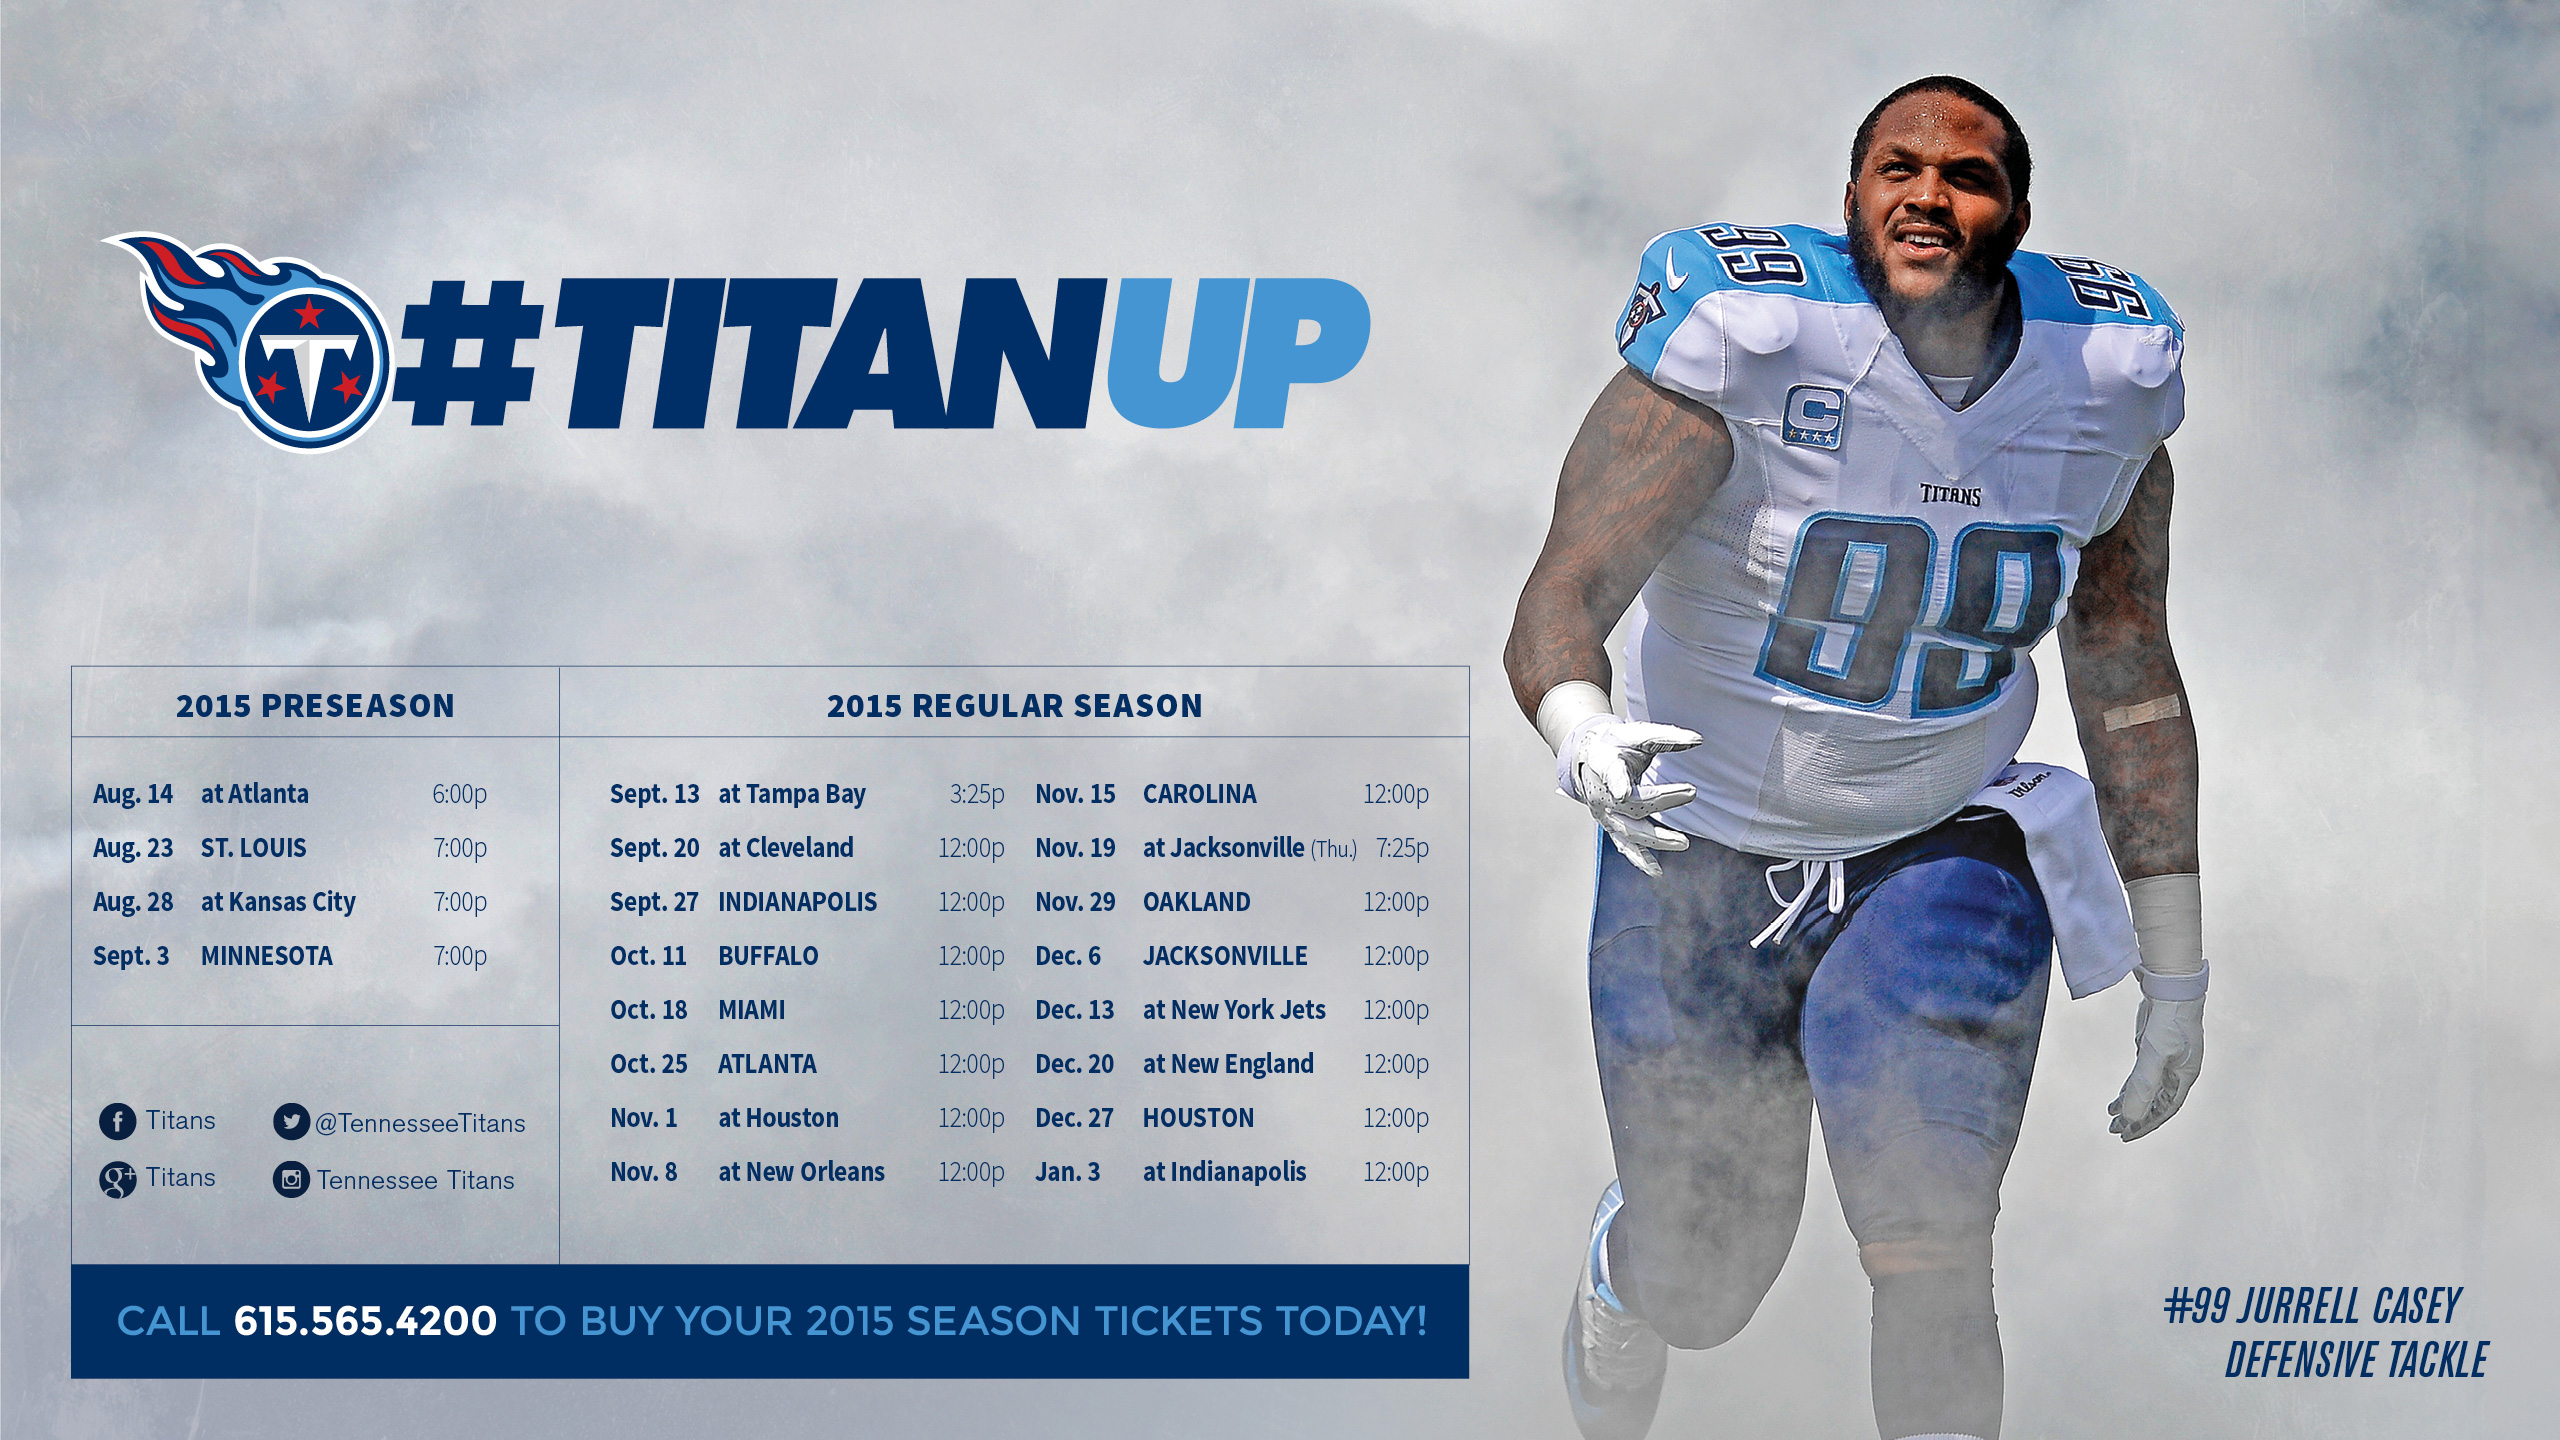 Tennessee Titans Downloadable Desktop Wallpaper 2560x1440